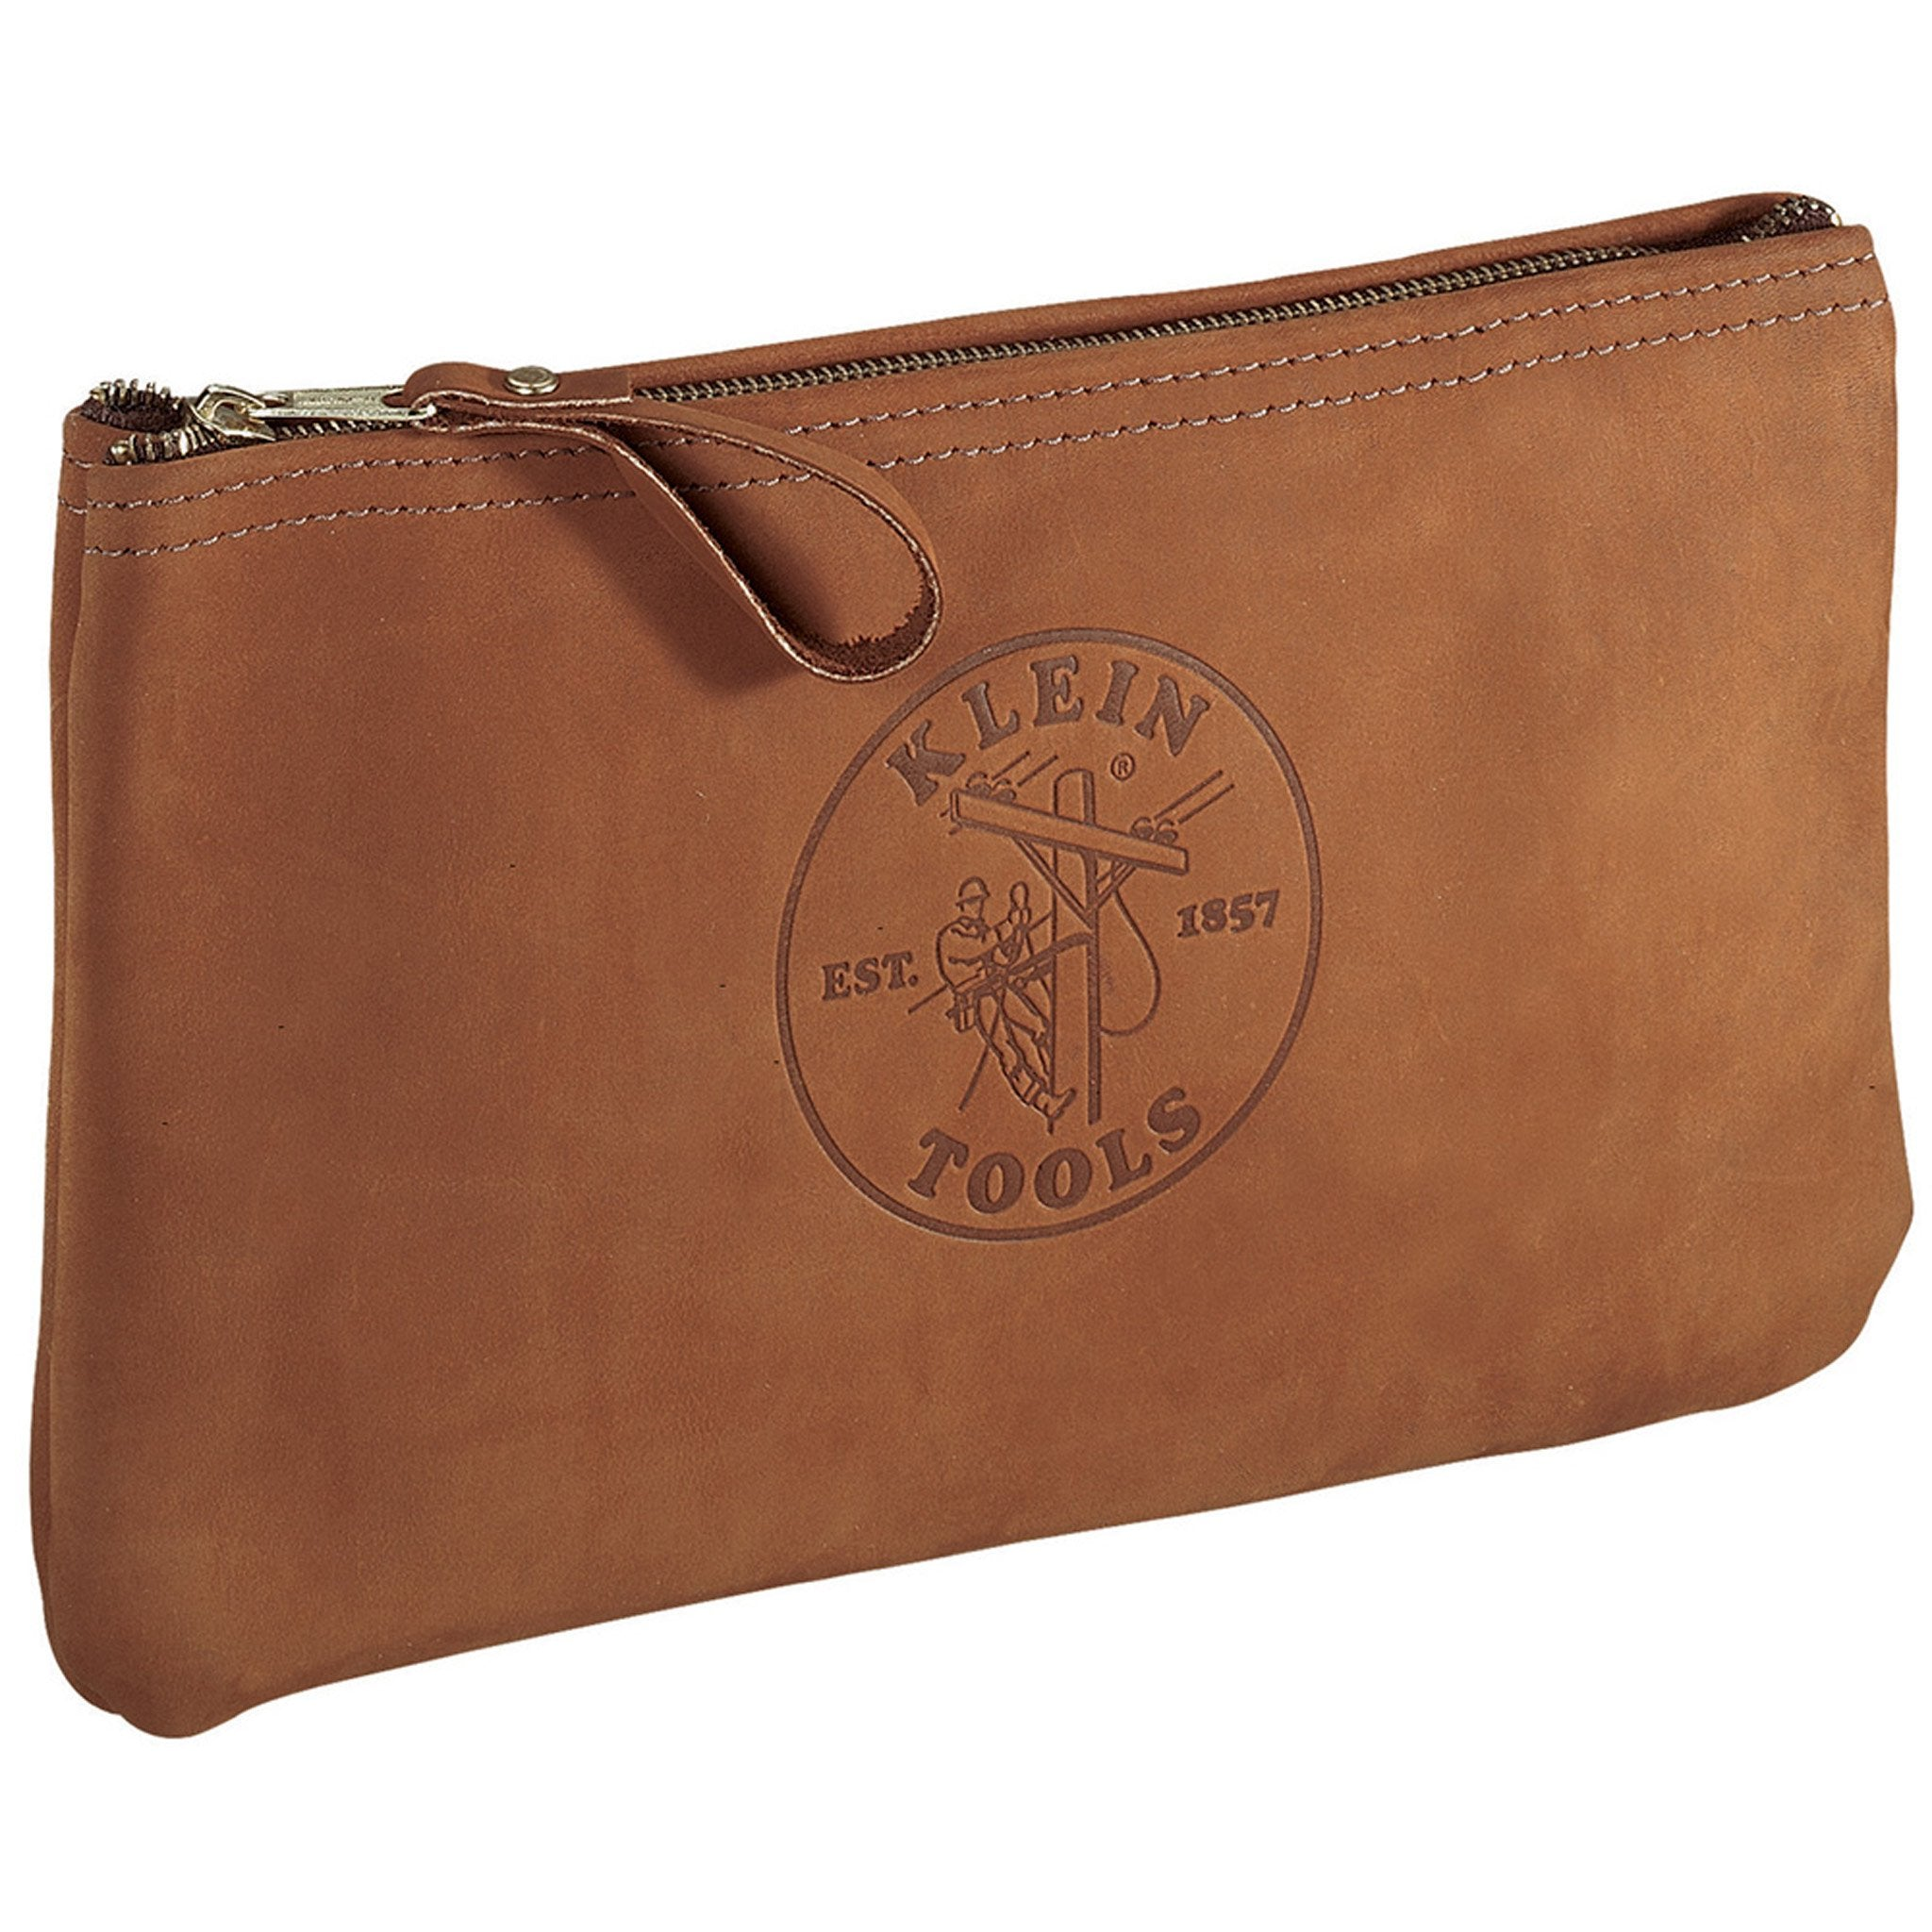 Klein Leather Zipper Bag Small Size - Arthur Beale